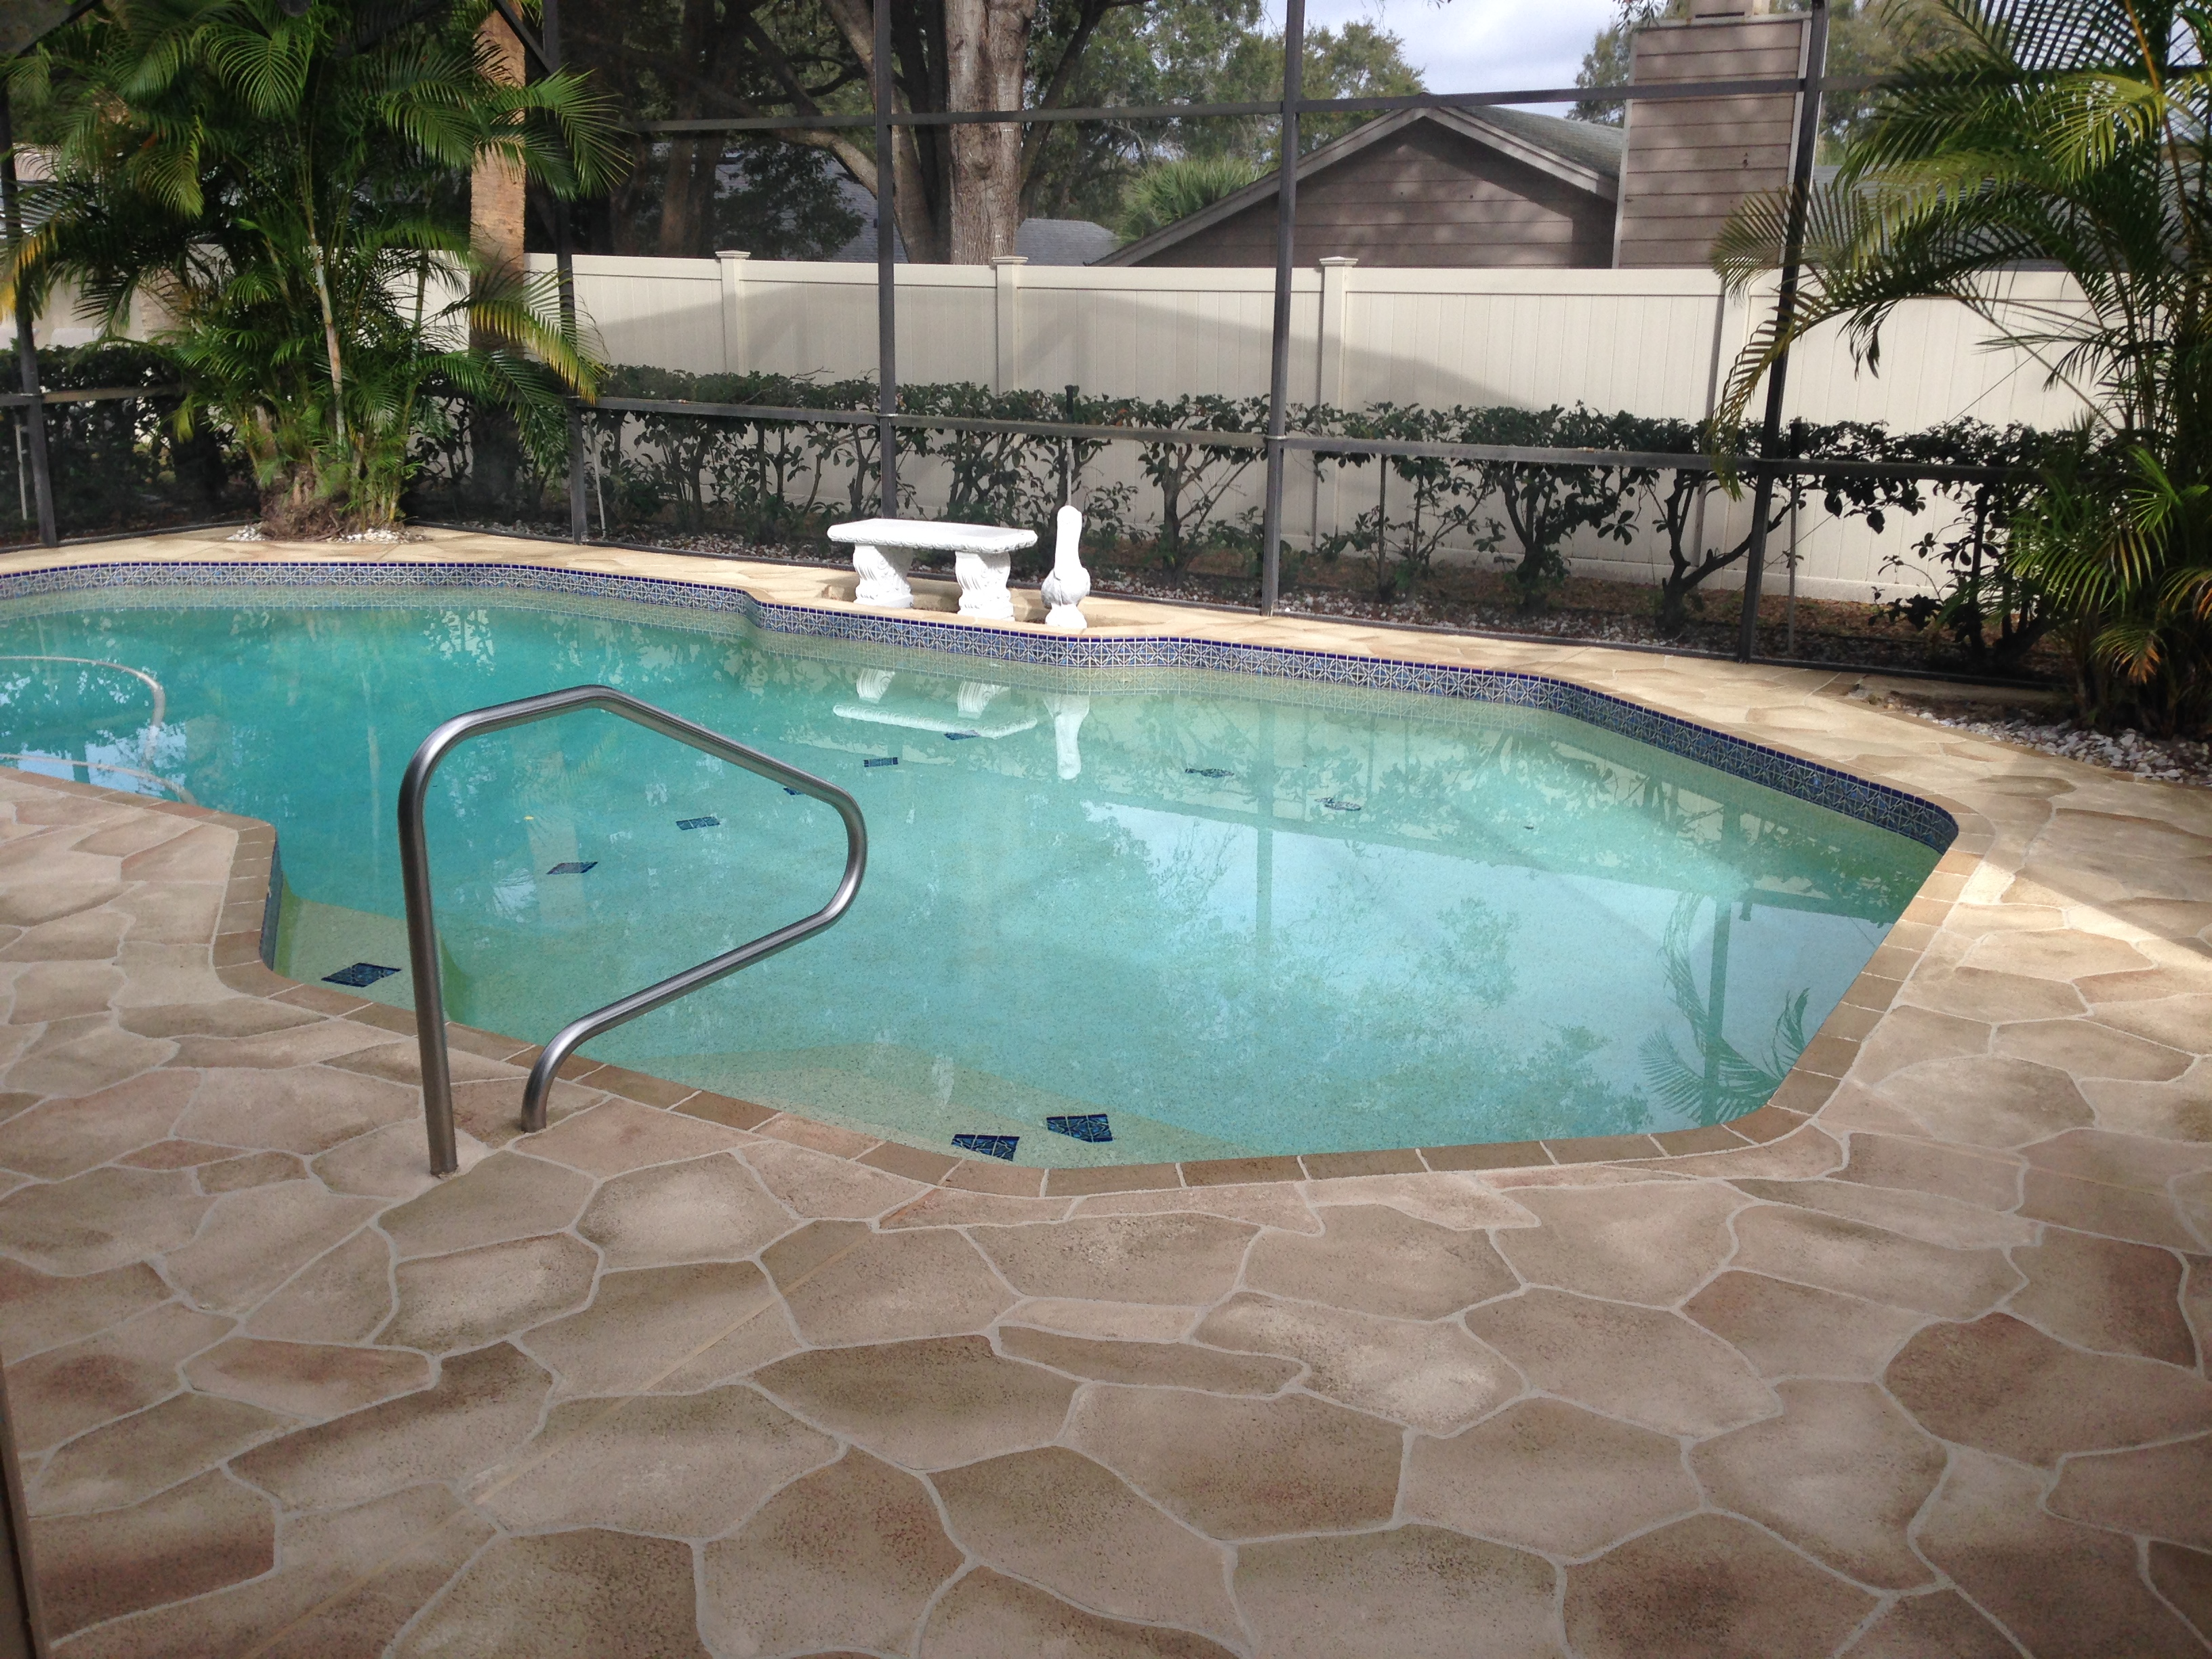 Concrete designs florida orlando flagstone pool deck for Above ground pool decks orlando